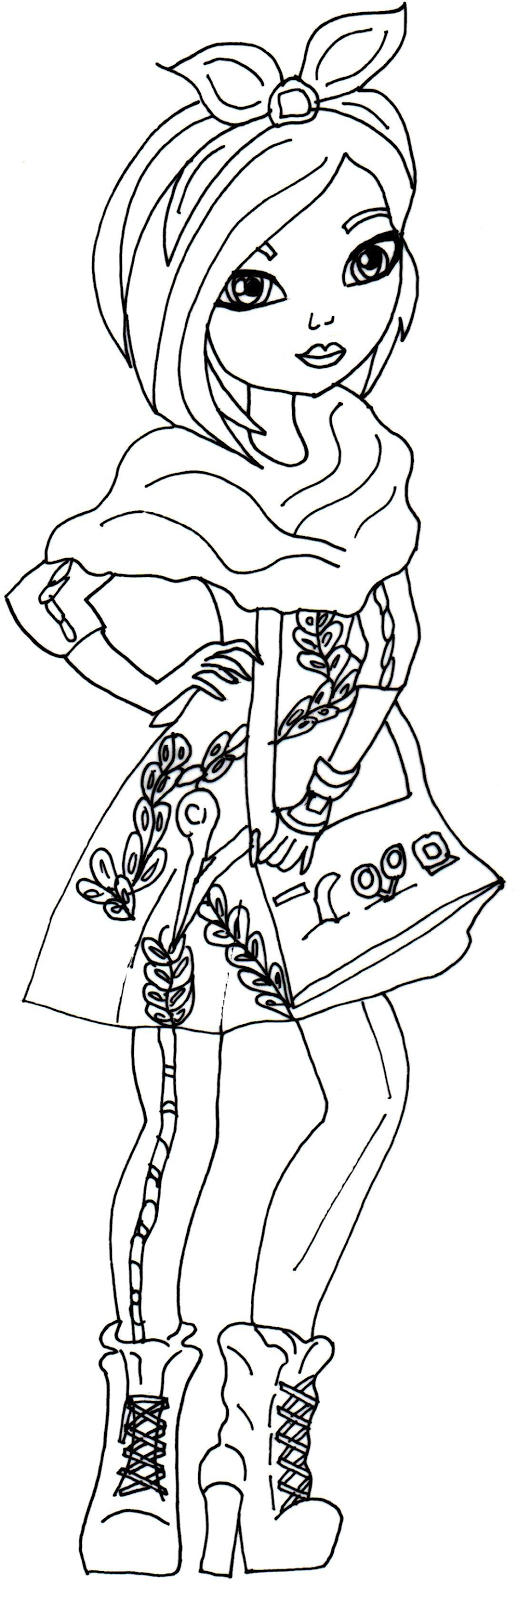 Coloring Pages for Girls Ever after High Download Kids Breathtaking to Print Of Exquisite Monster High Printables Coloring Pages Free Gallery